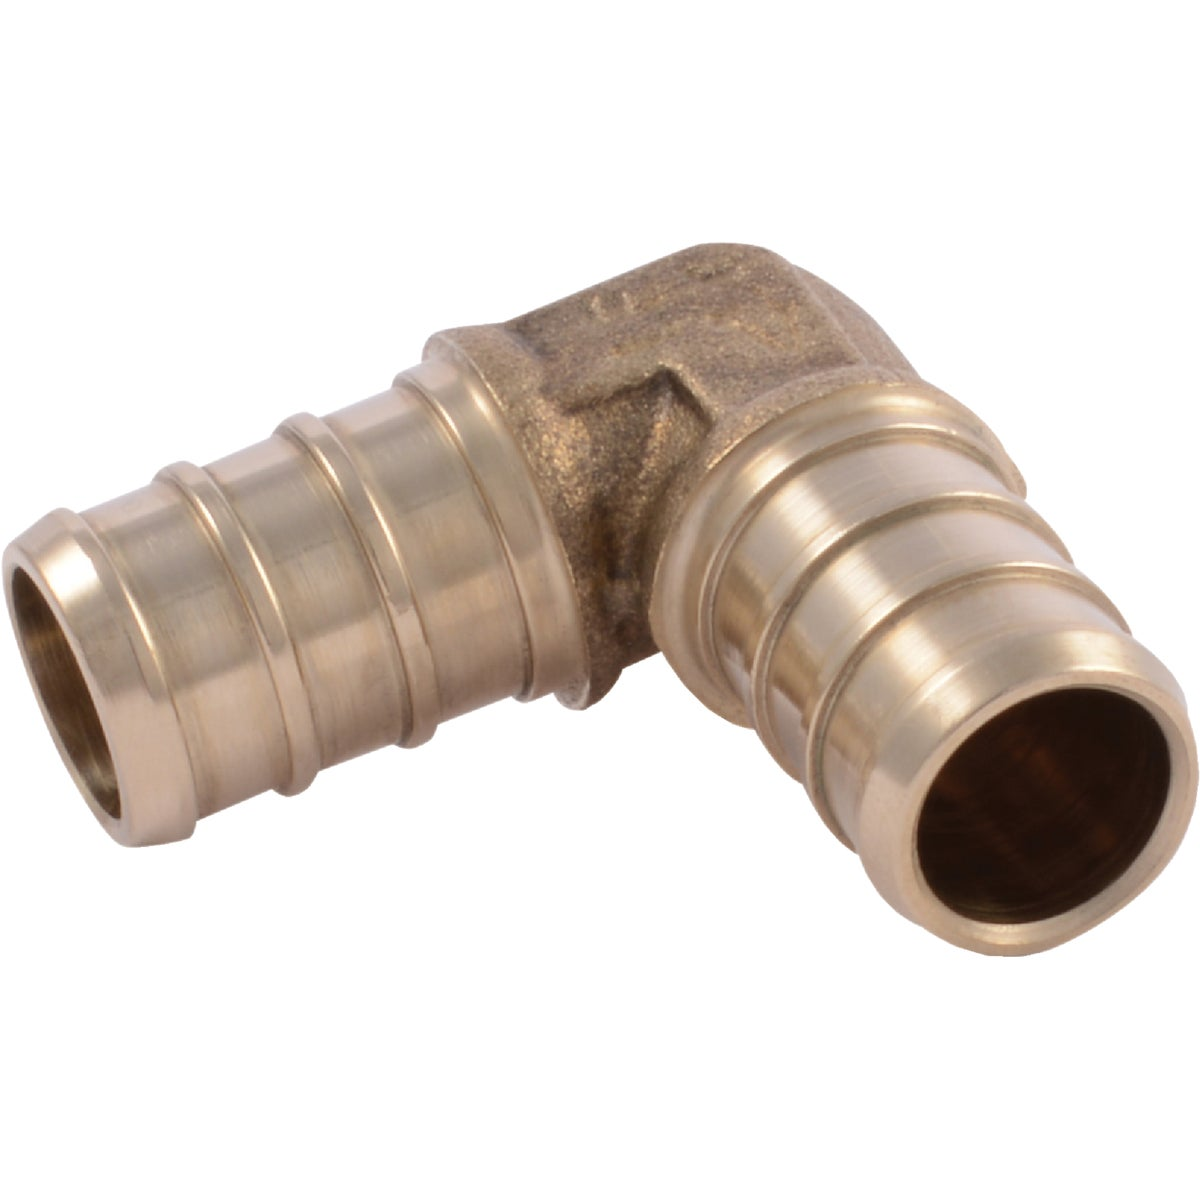 "100PK 1/2""CF BRASS ELBOW - LFWP19B-08 by Watts Regulator Co"